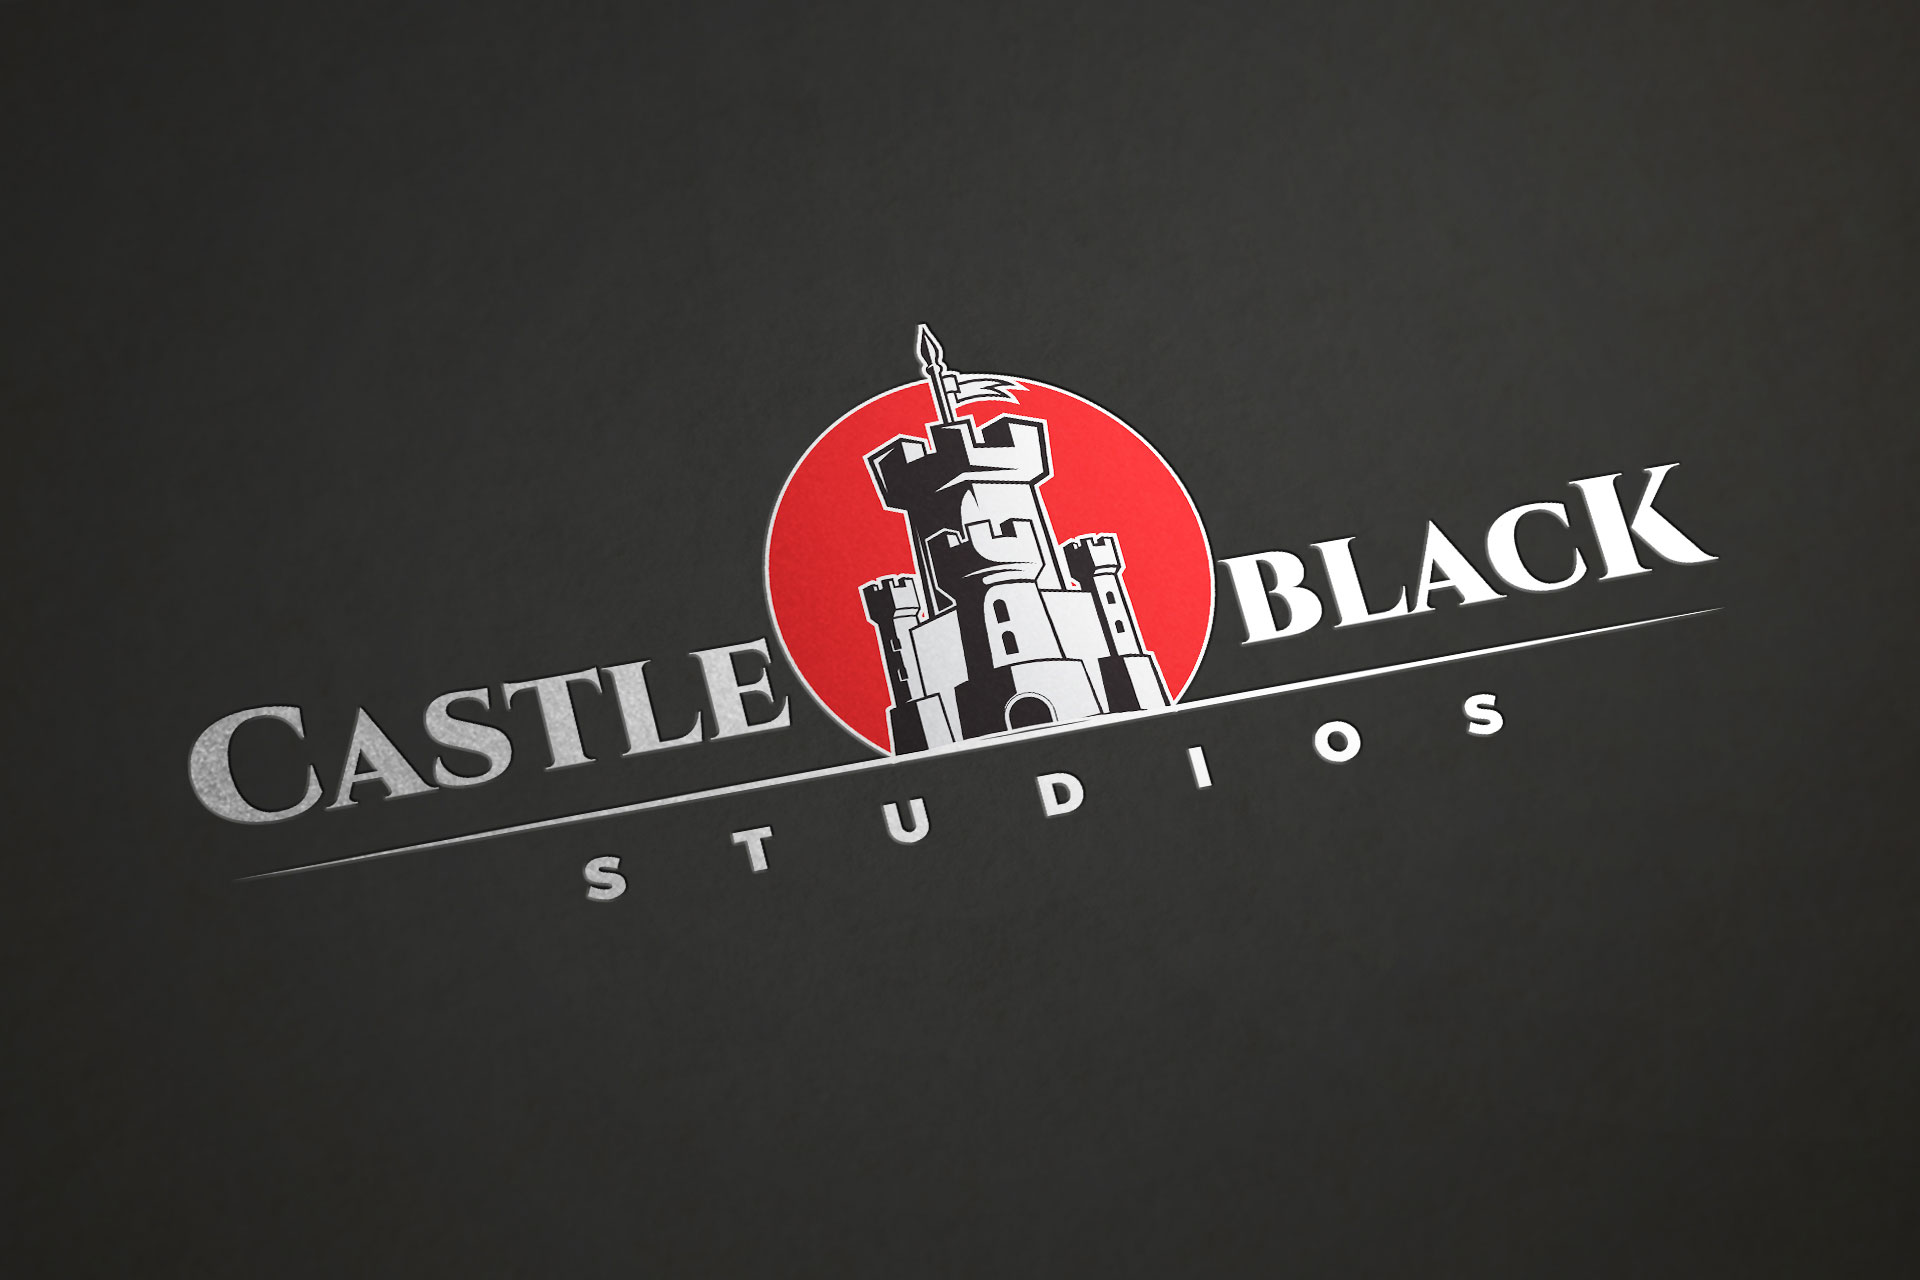 Castle Black Studio